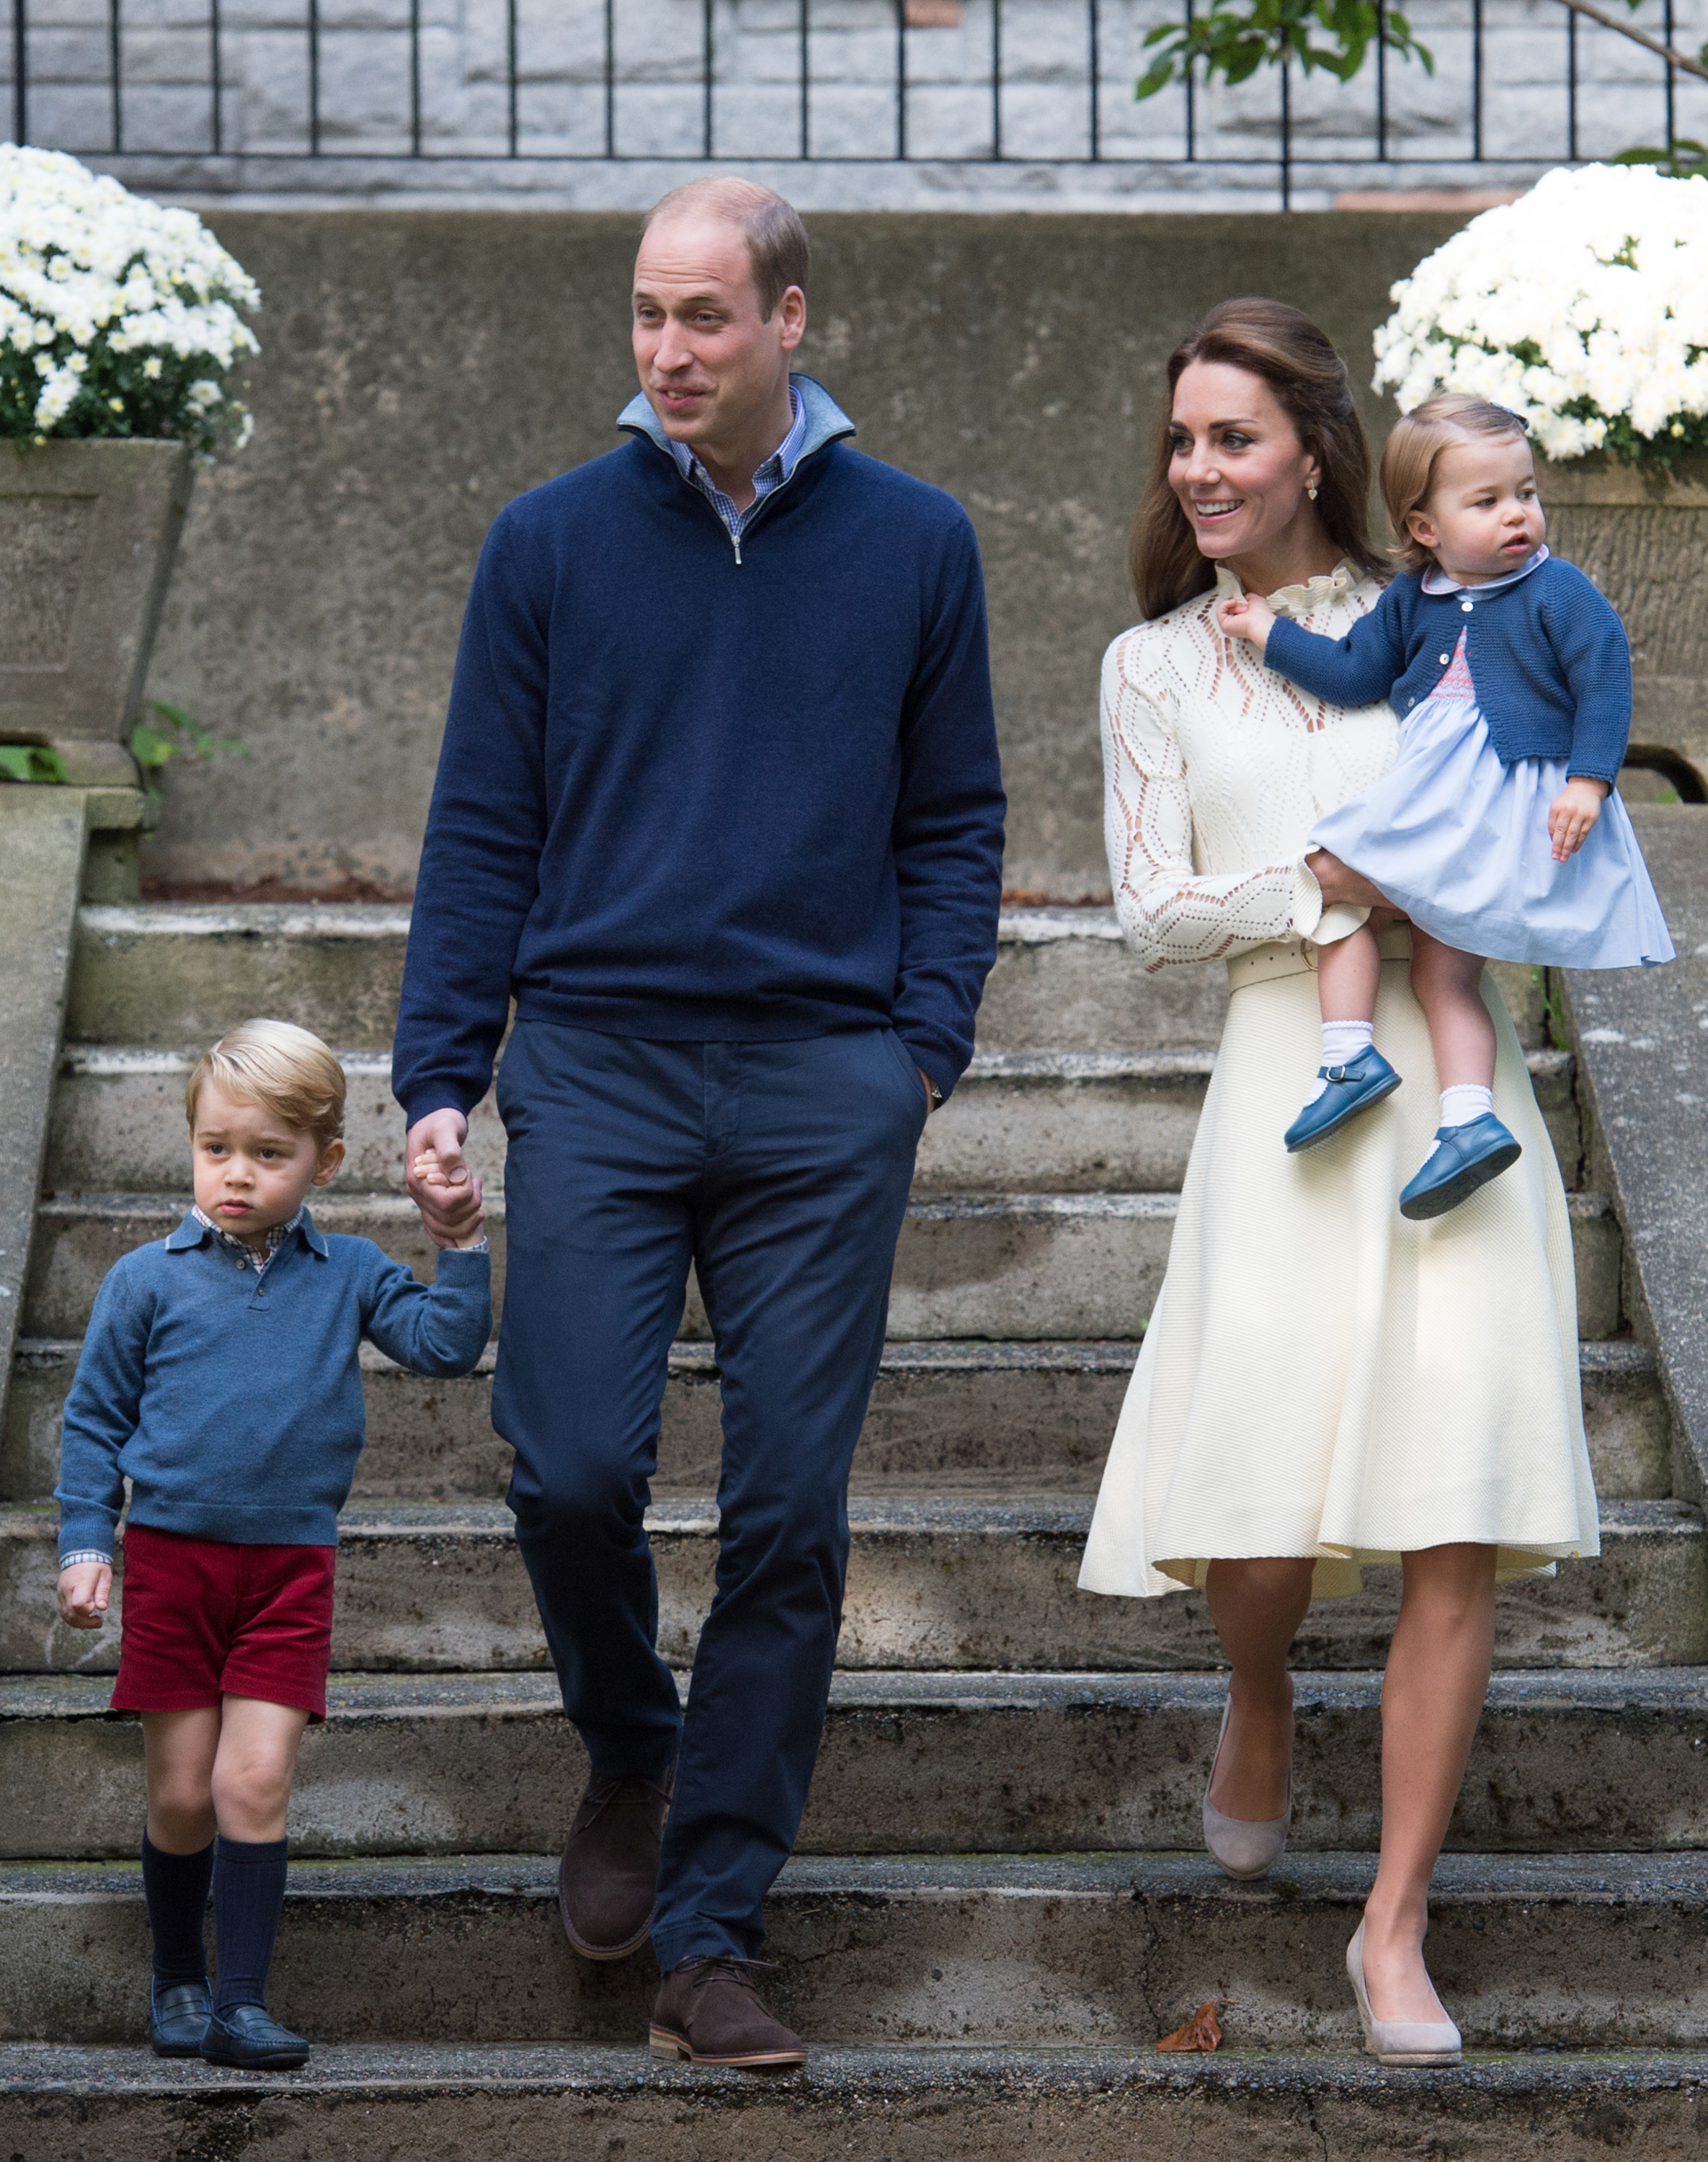 Princess Charlotte Is Taking After Big Brother Prince George In The Most Adorable Way With Her New Hobby